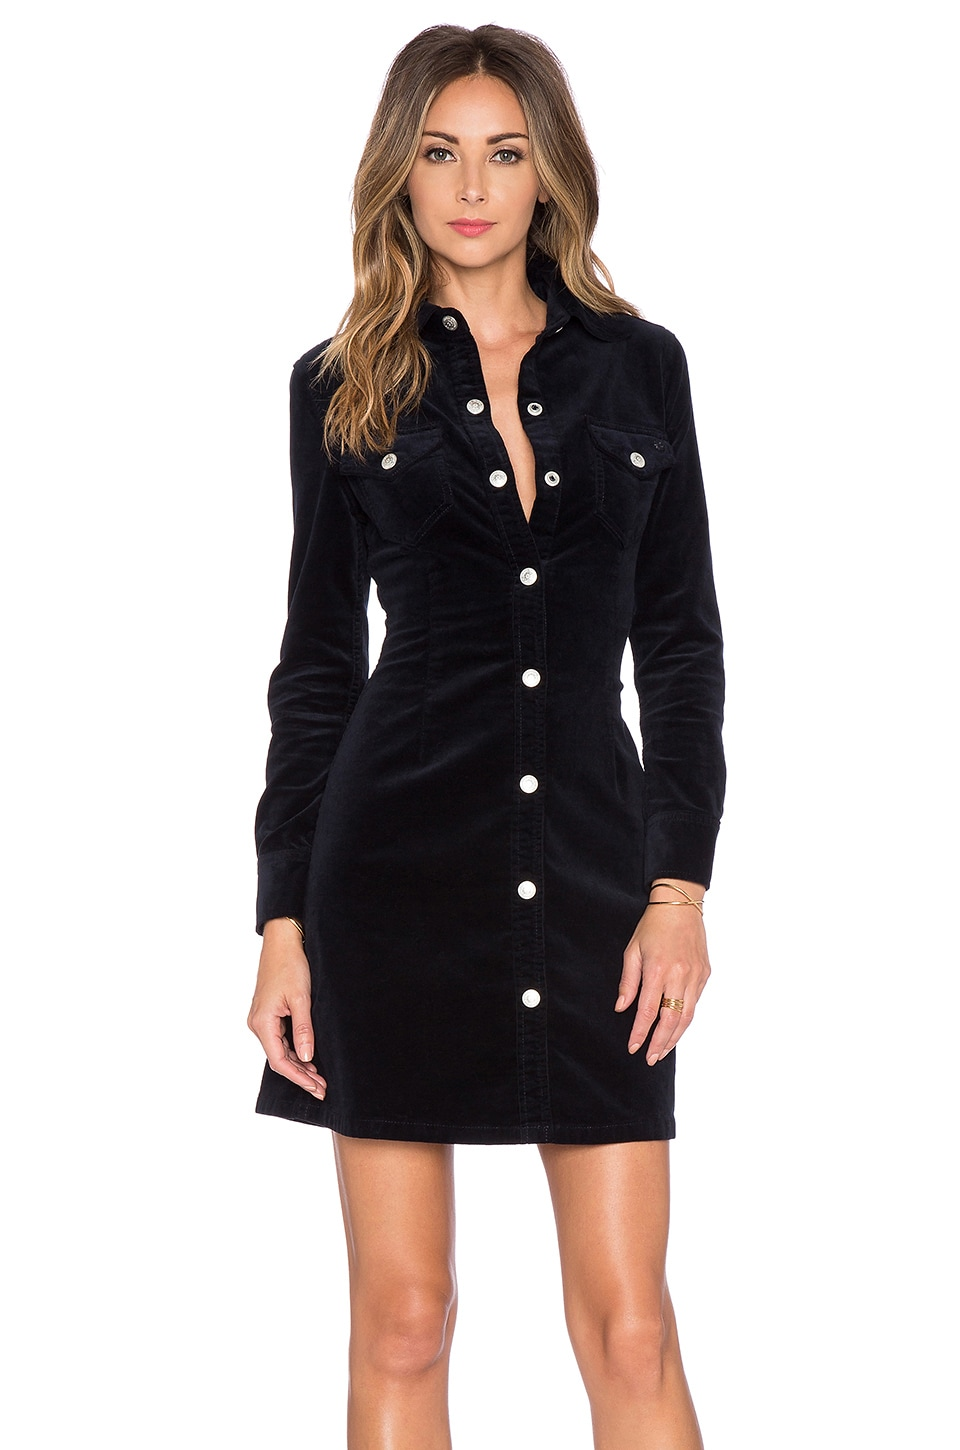 AG Adriano Goldschmied x Alexa Chung Pixie Dress Cord in Dark Navy